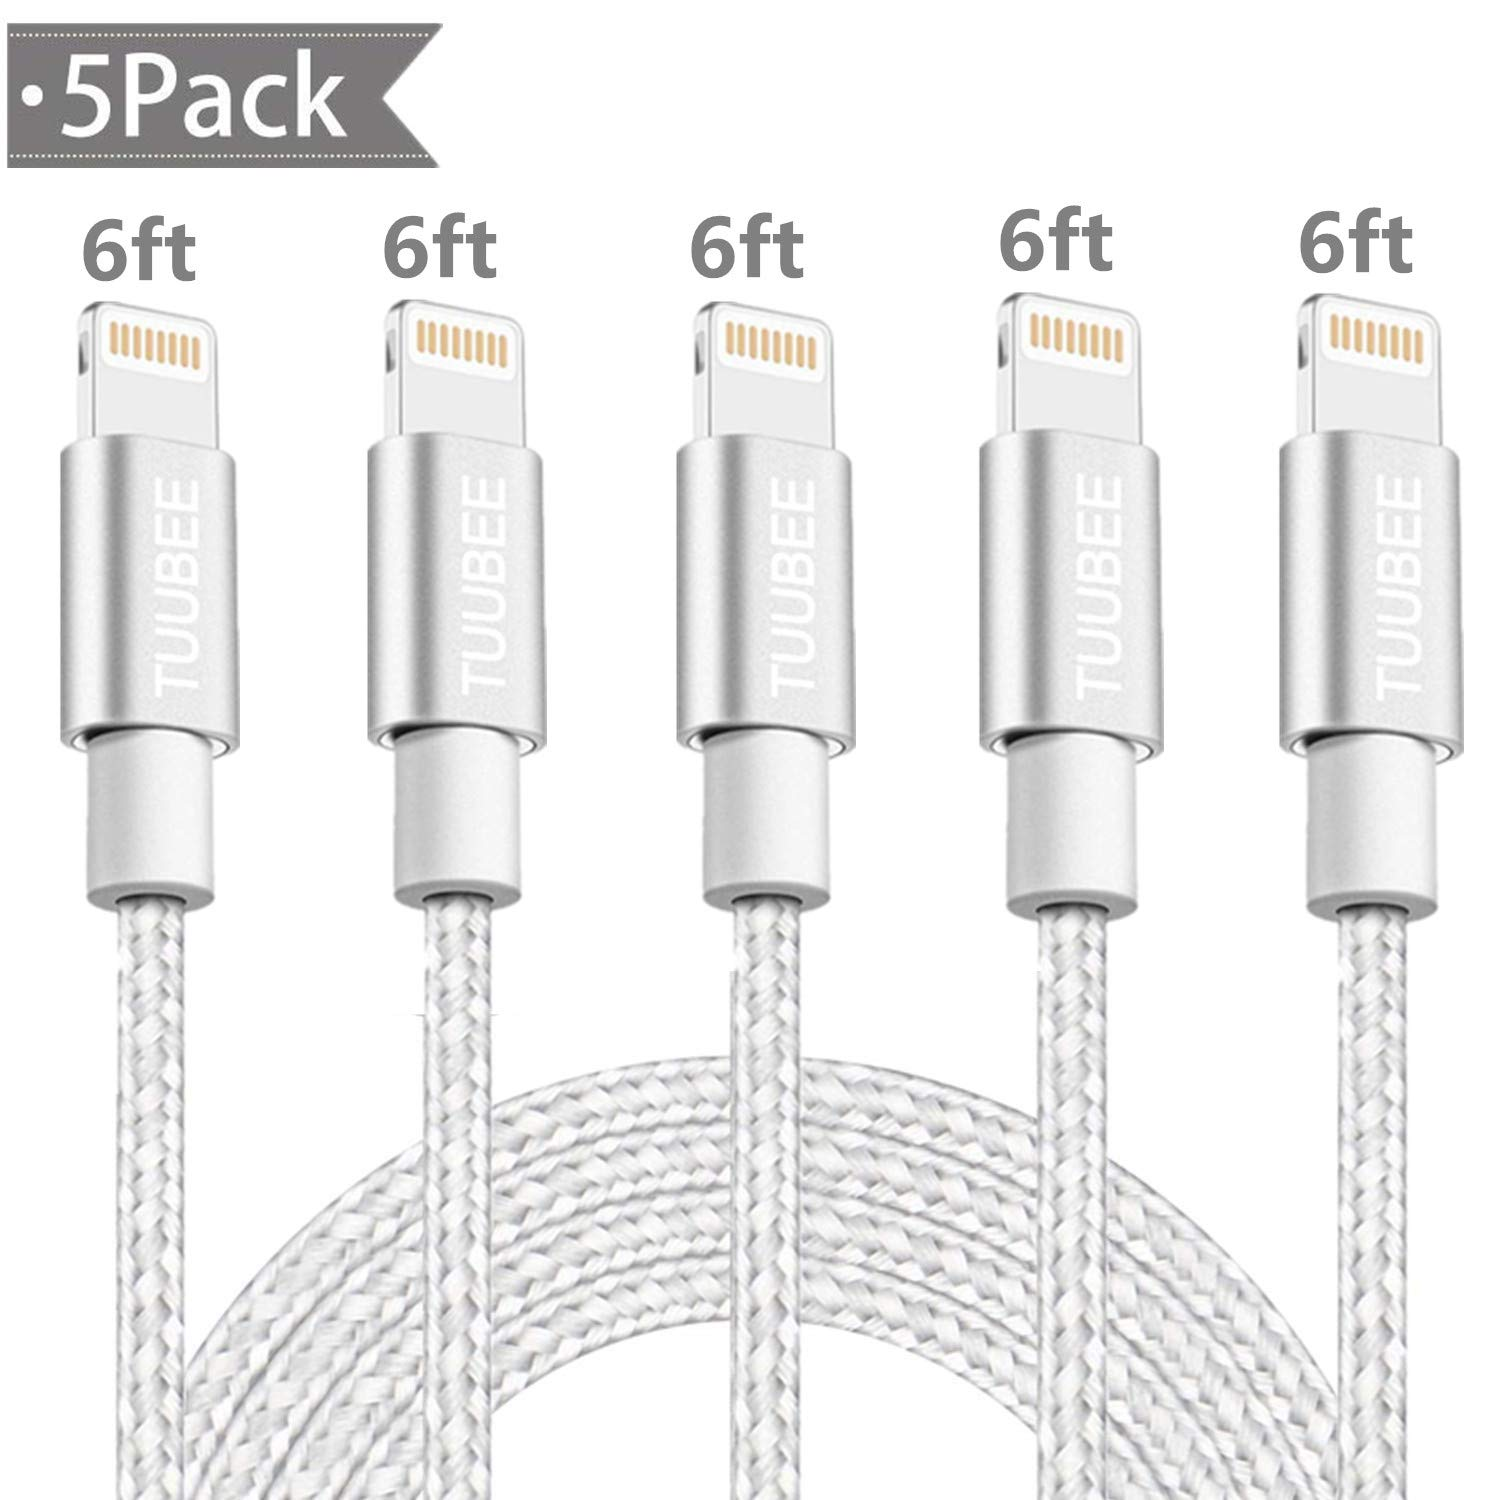 Lightning Cable TUUBEE Nylon Braided iPhone Charger Cable Cord 5Pack 6FT Long MFi Certified iPhone Data Cable Wire USB Fast Charging Cord Compatible iPhone XS/MAX/XR/X/8/7/6/5/iPad/iPod (Silver&White)